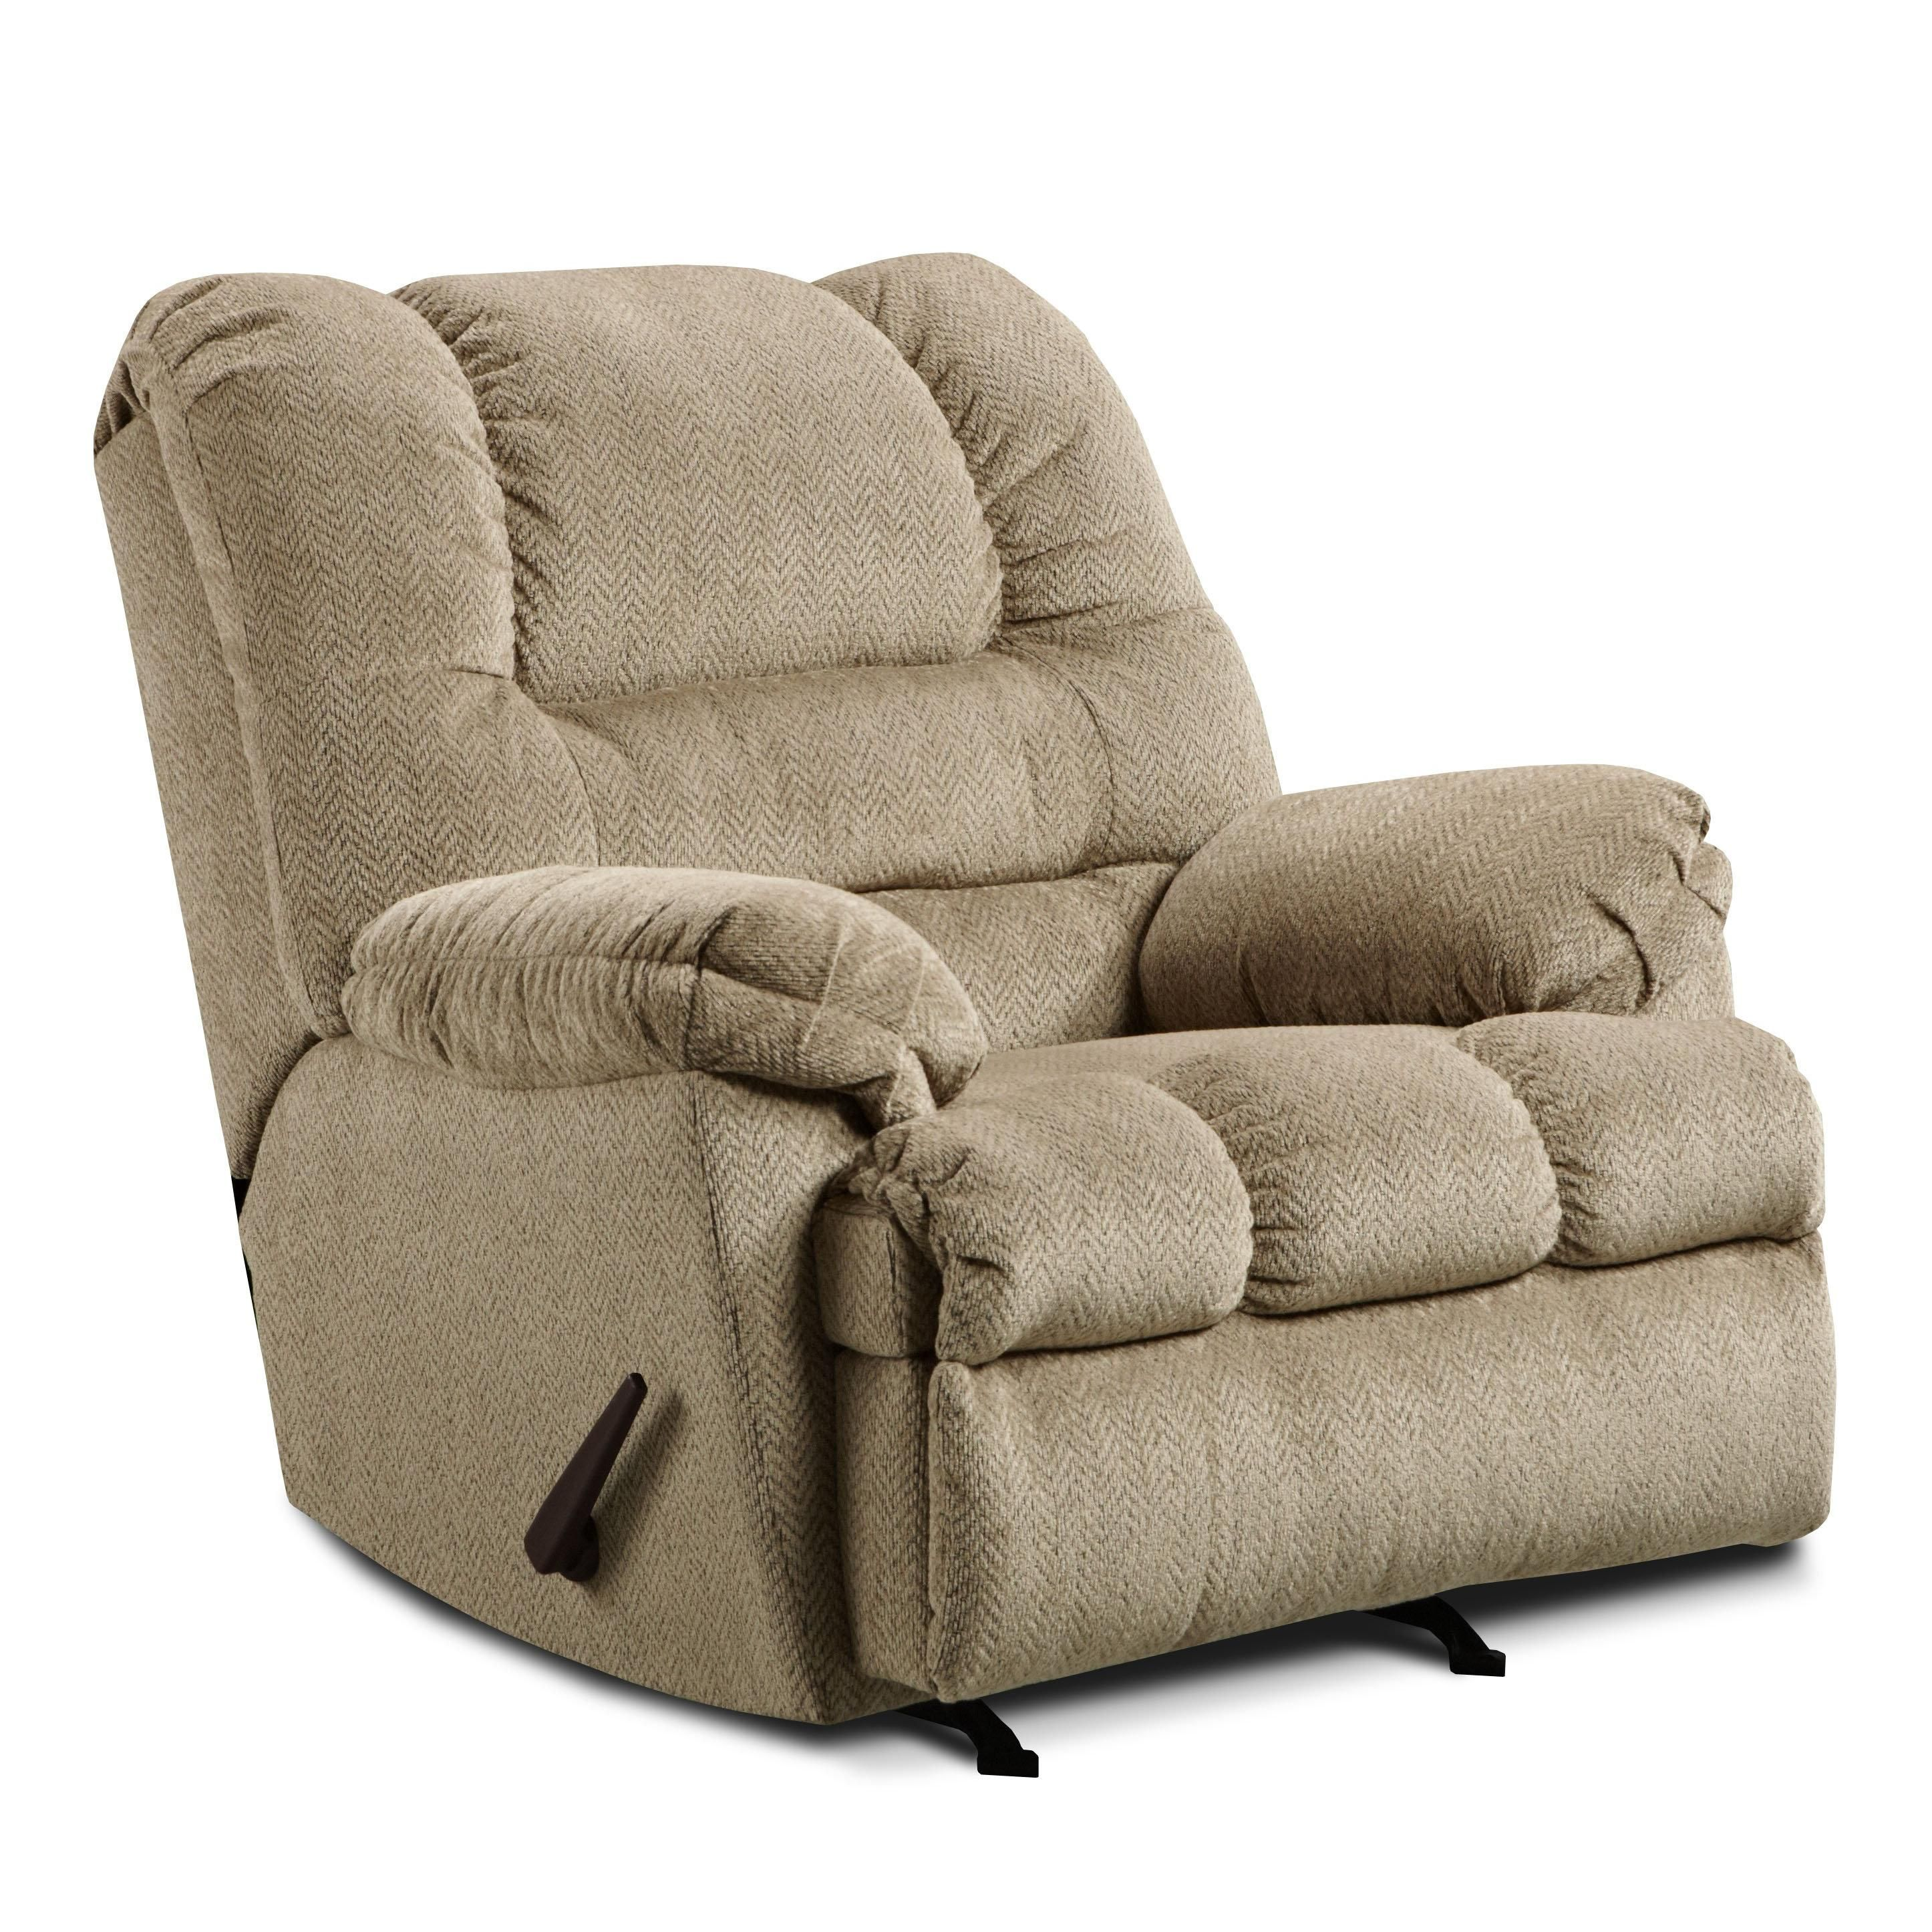 600 Casual Oversized Rocker Recliner By United Furniture Industries Bina